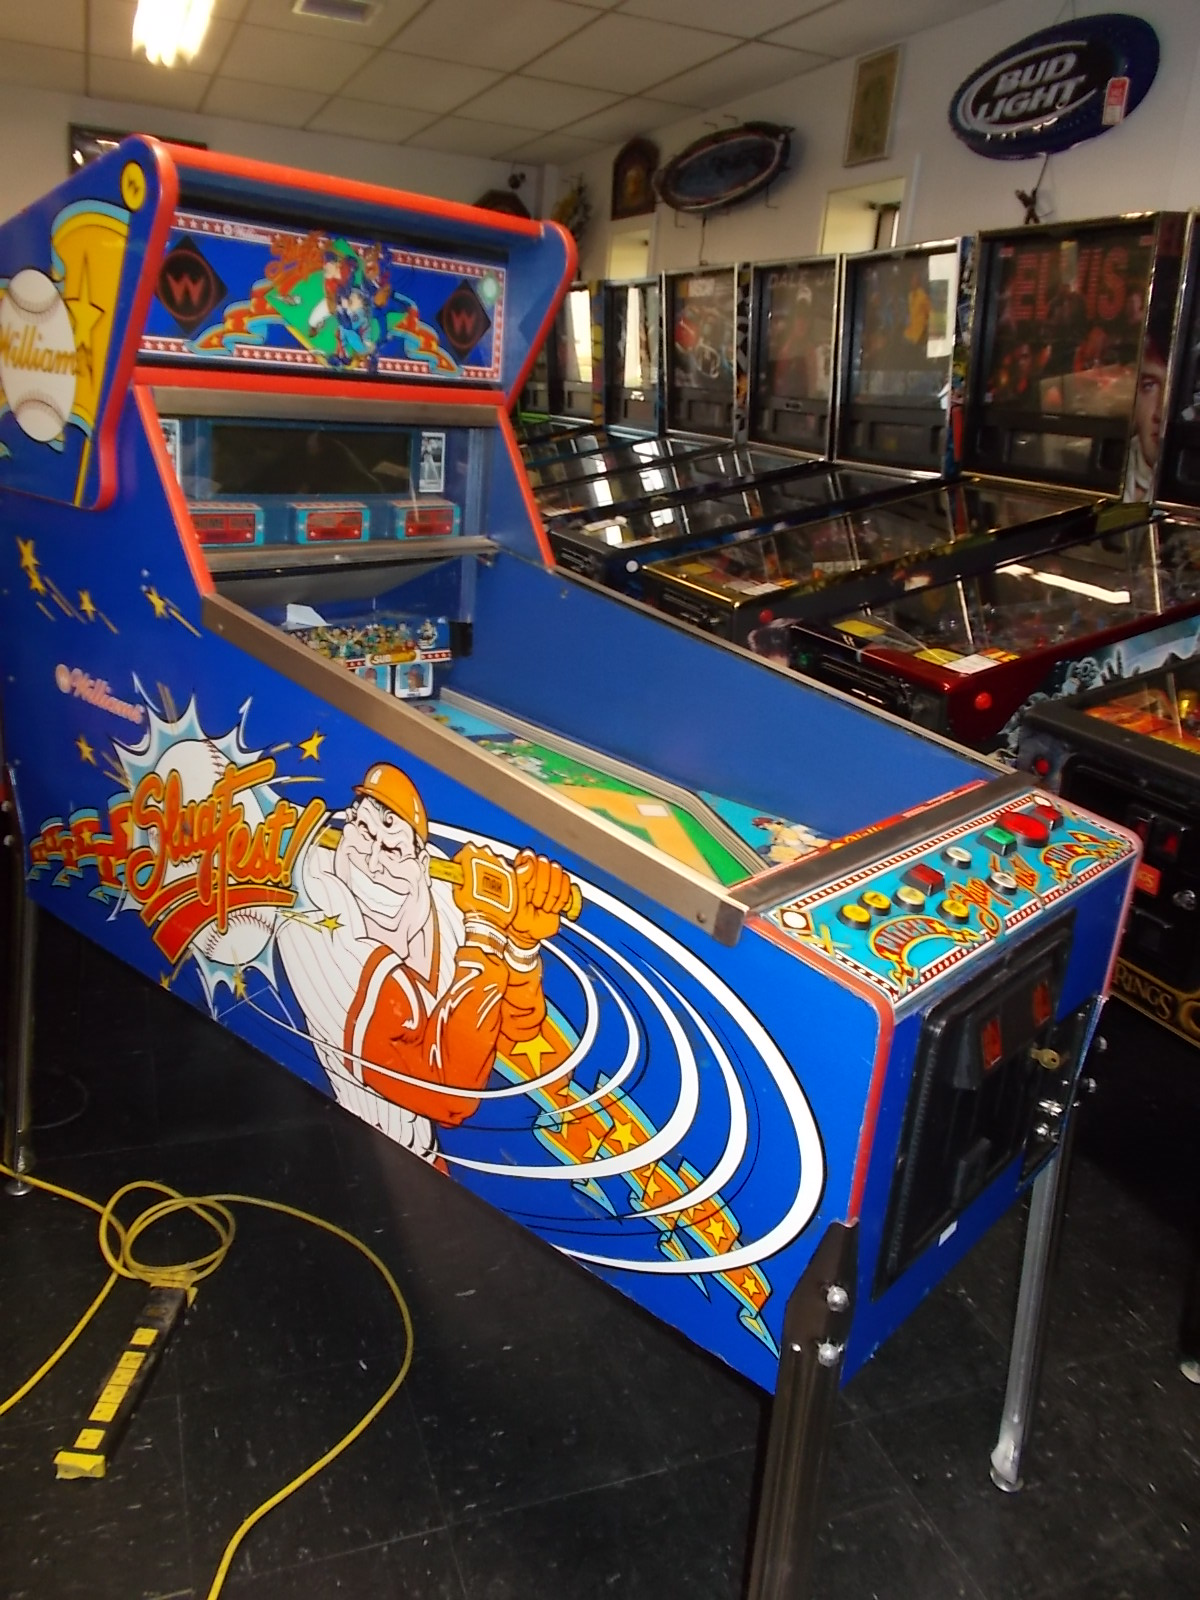 SLUGFEST BASEBALL PITCH & BAT Arcade Machine Game for sale by WILLIAMS - LED UPGRADE